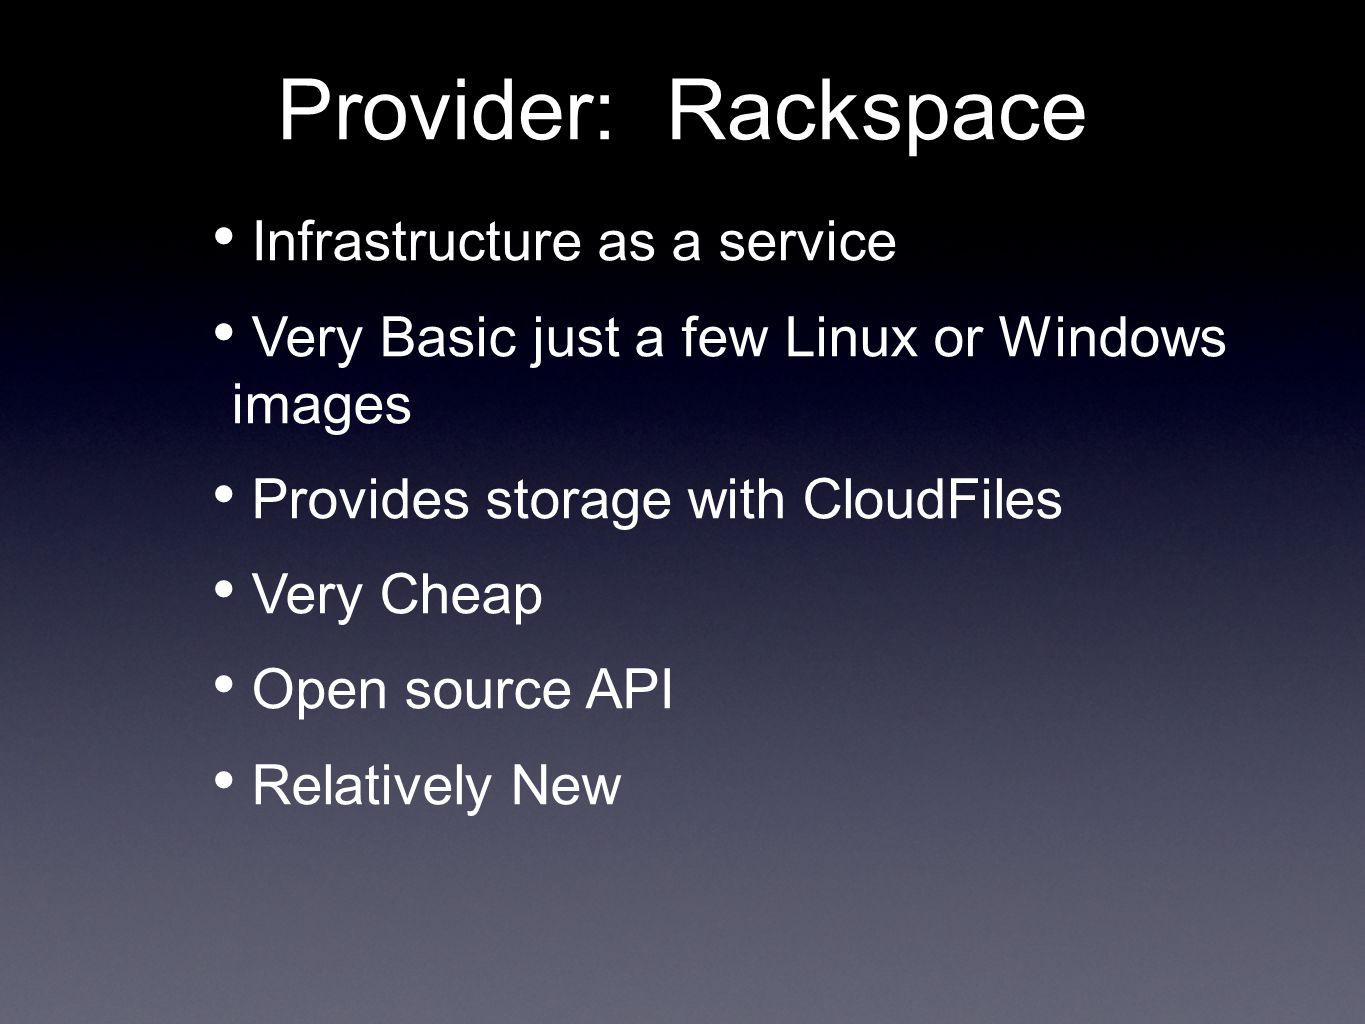 Provider: Rackspace Infrastructure as a service Very Basic just a few Linux or Windows images Provides storage with CloudFiles Very Cheap Open source API Relatively New